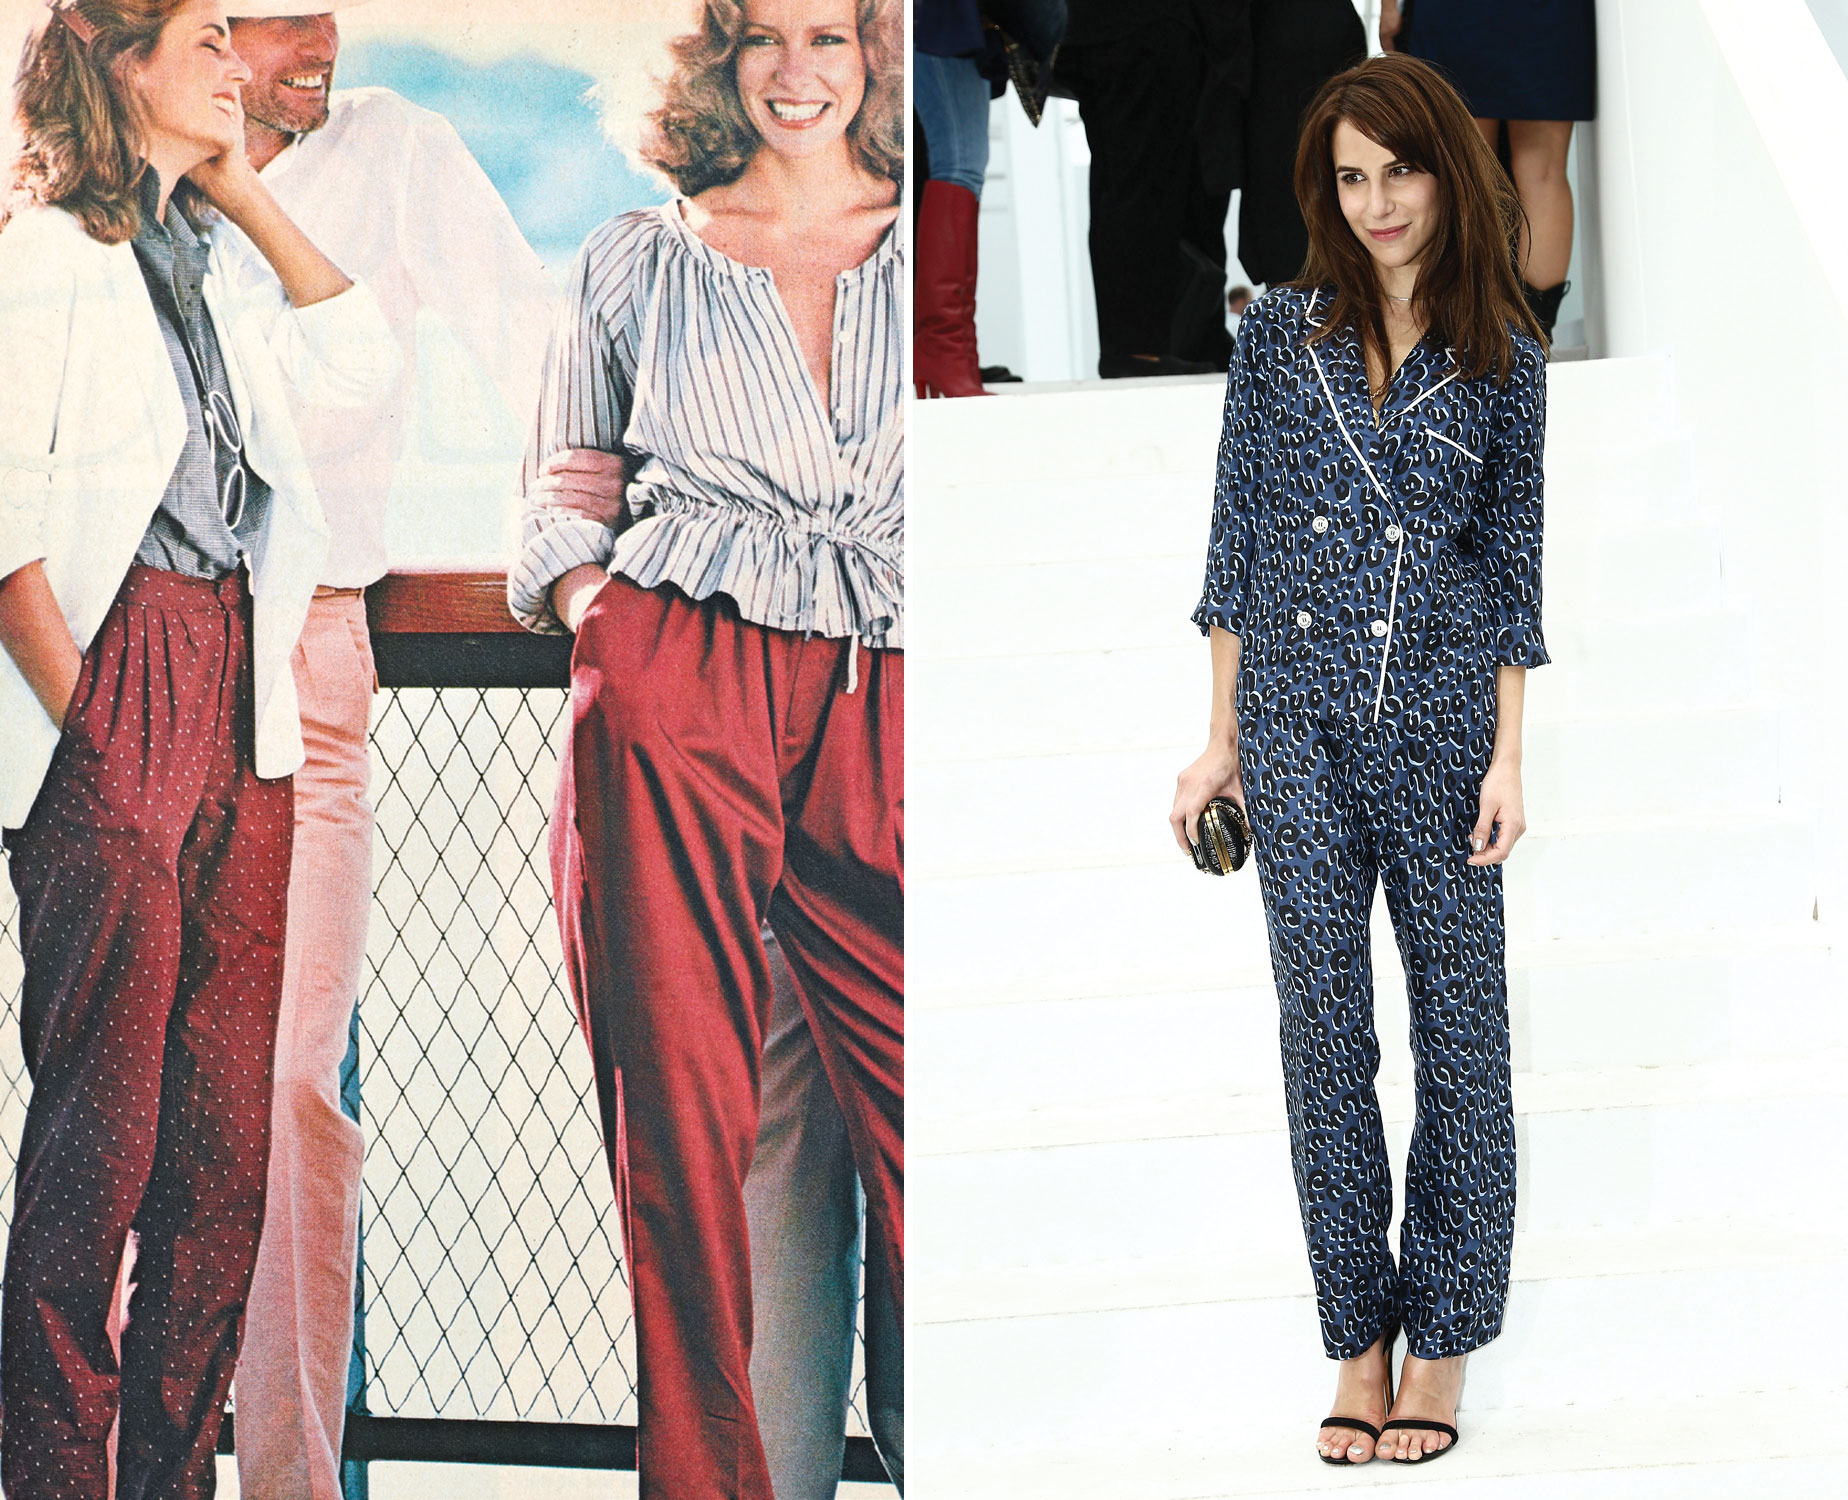 Summer Fashion Trend To Try: Pyjama Dressing